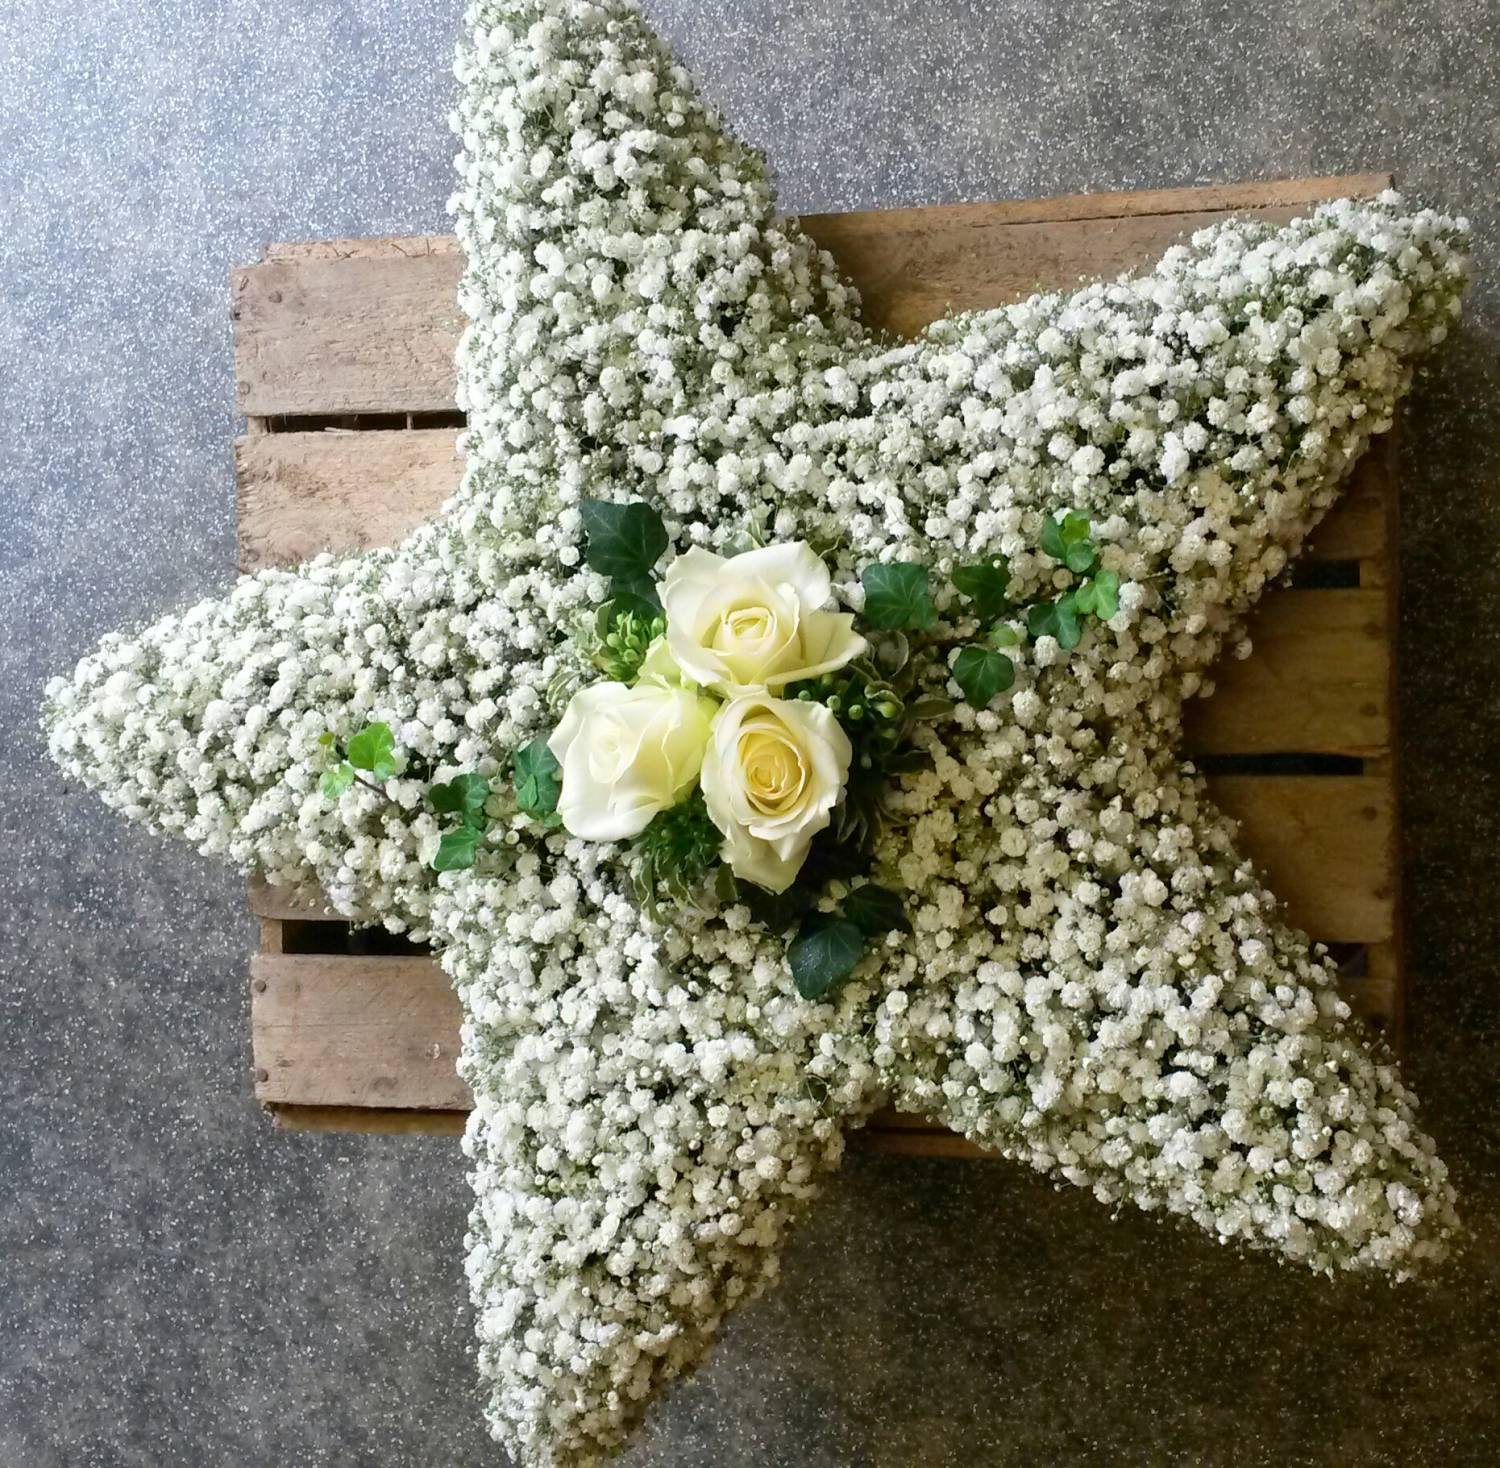 Funeral flowers fleurt in monkseaton gyp star bespoke creations izmirmasajfo Image collections